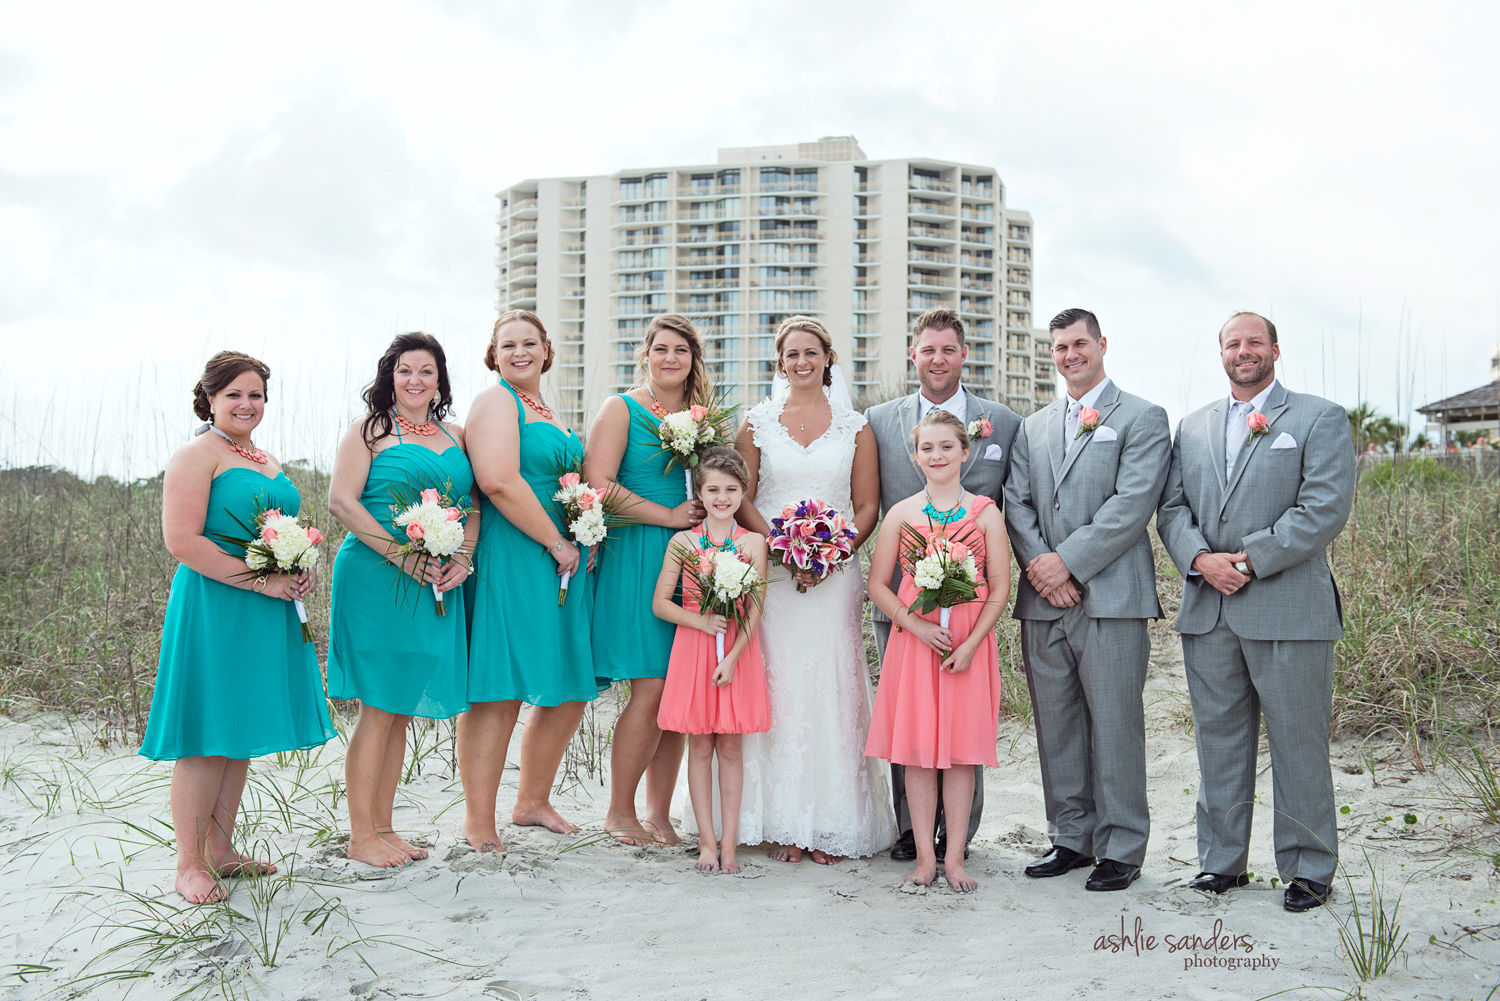 Wedding Party at Ocean Creek Resort in Myrtle Beach